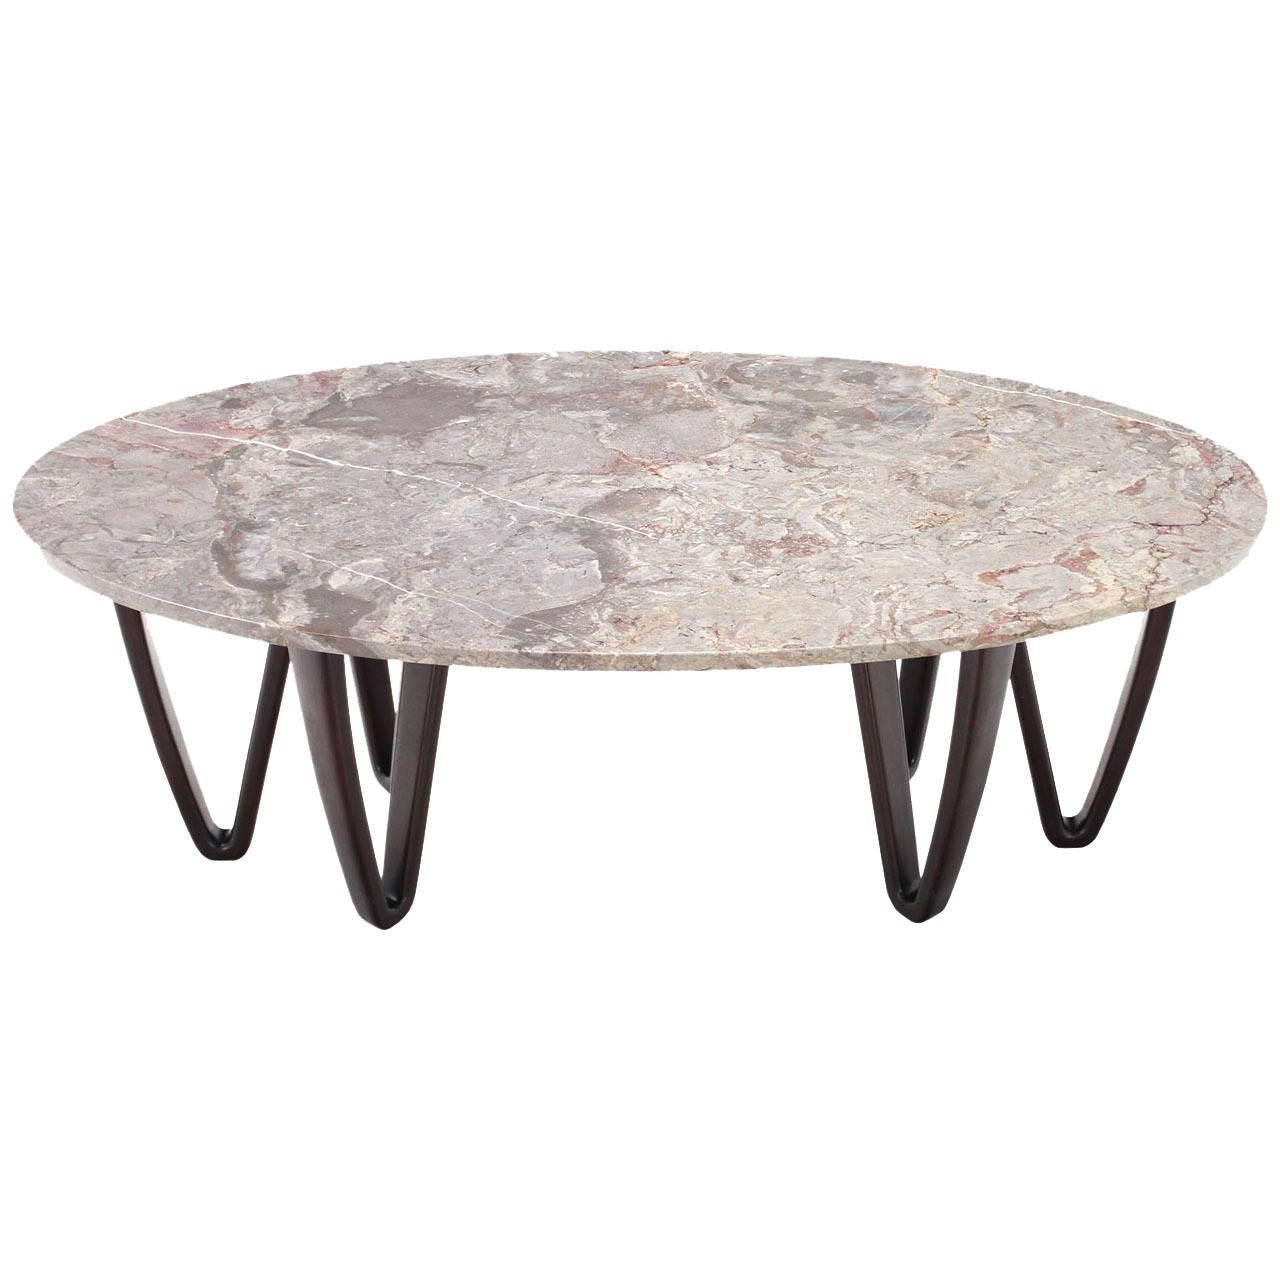 Home Decor: Amusing Marble Top Coffee Table And Oval Table On Wooden Pertaining To Famous Smart Large Round Marble Top Coffee Tables (View 6 of 20)